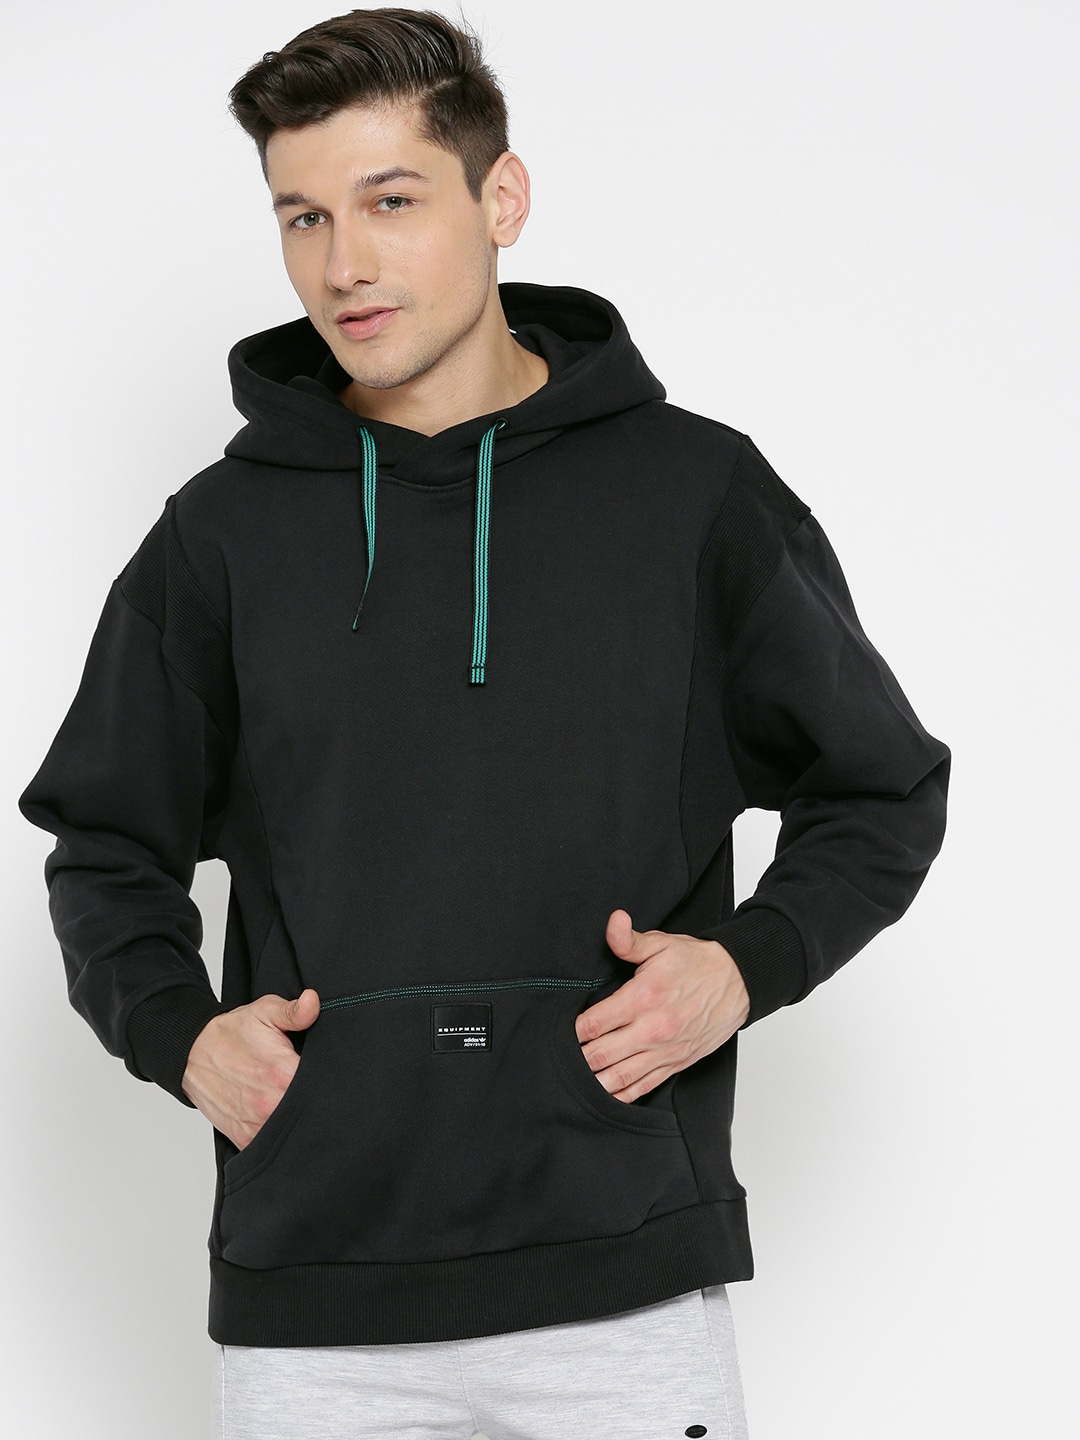 Buy Adidas EQT 18 Originals Black Hooded Sweatshirt At Best Price